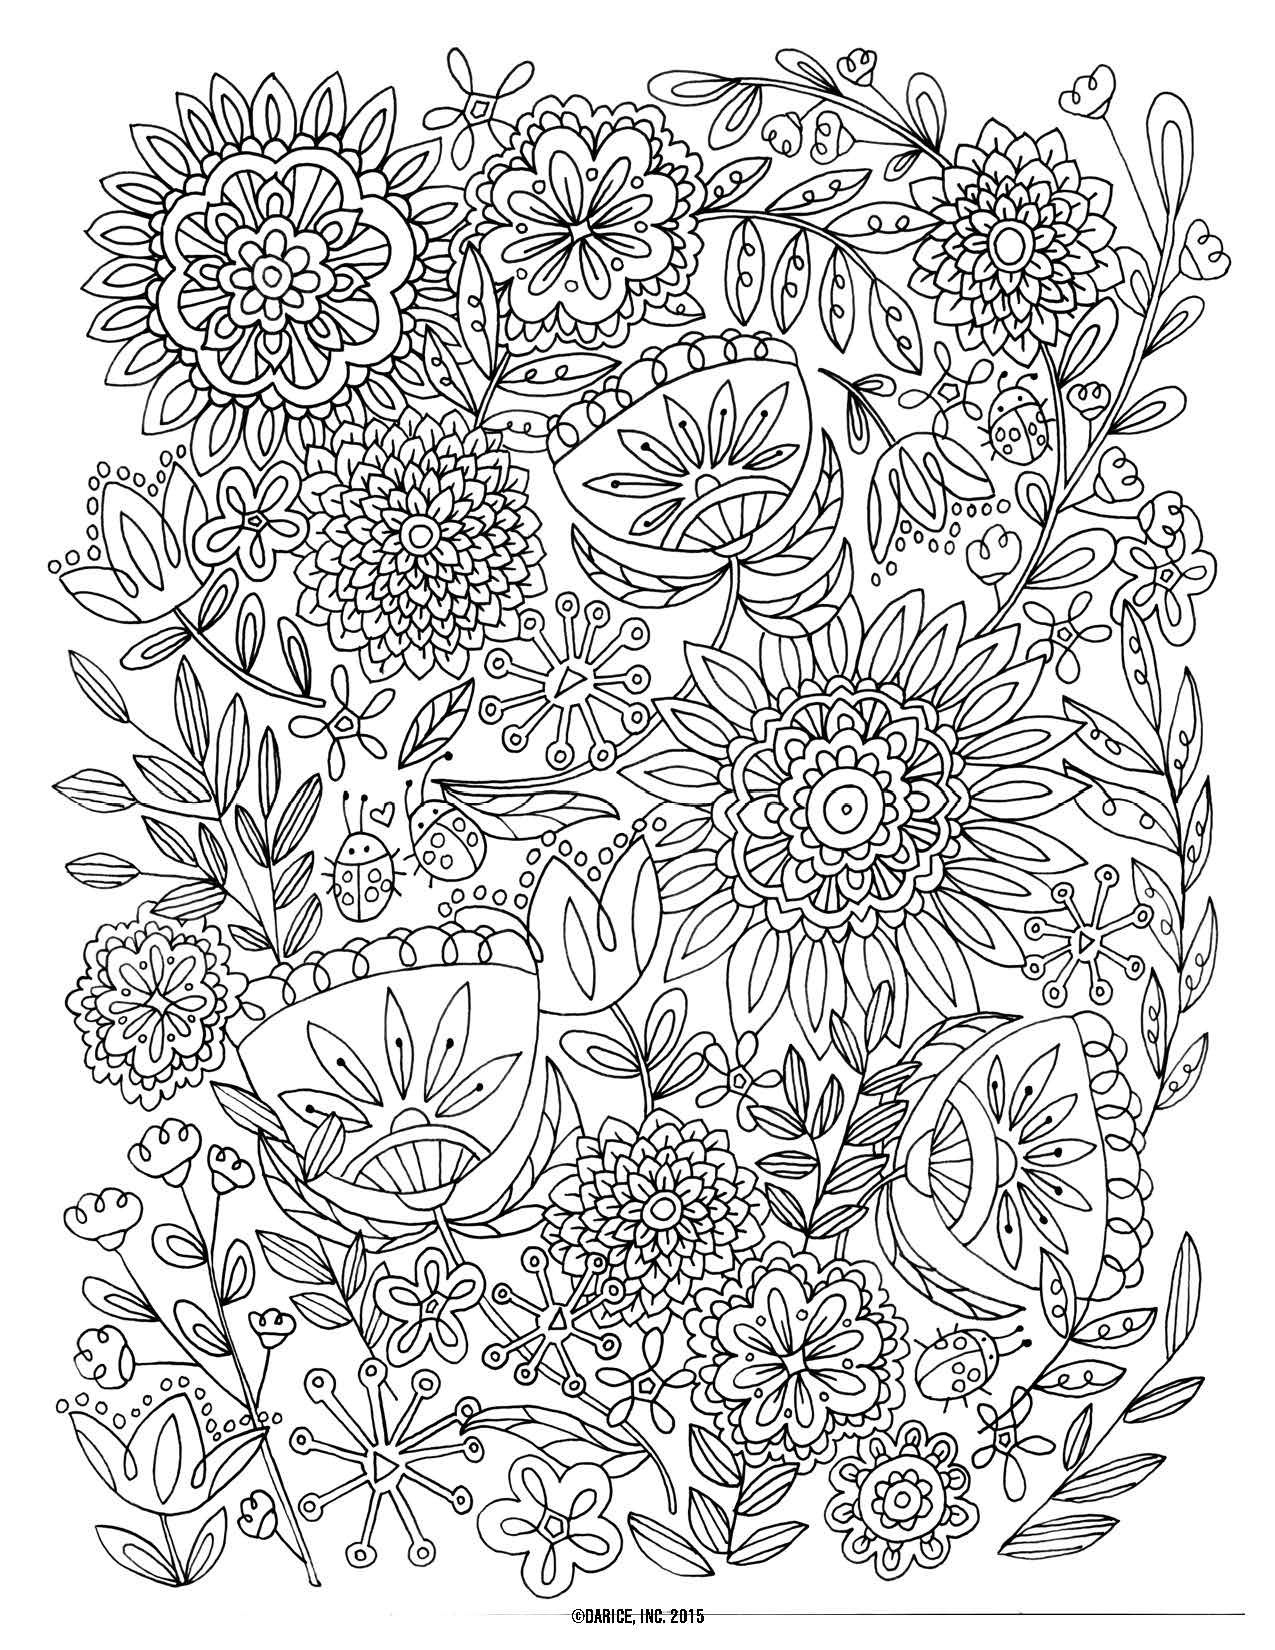 Free Coloring Pages Printables | Coloring Books Printable - Free Printable Flower Coloring Pages For Adults